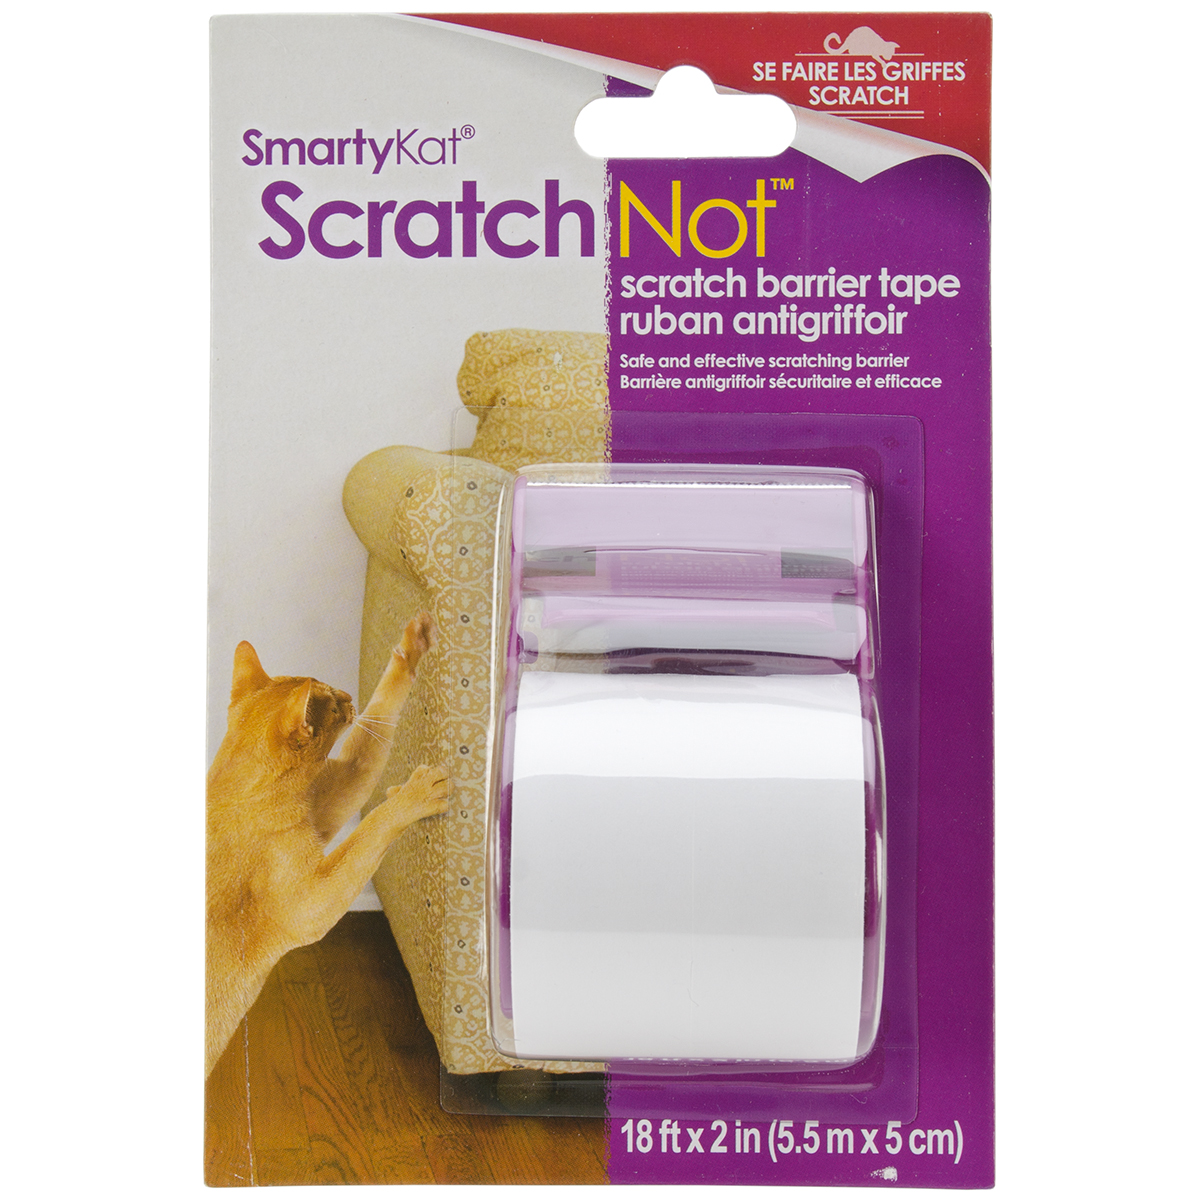 SmartyKat ScratchNot Scratch Barrier Tape